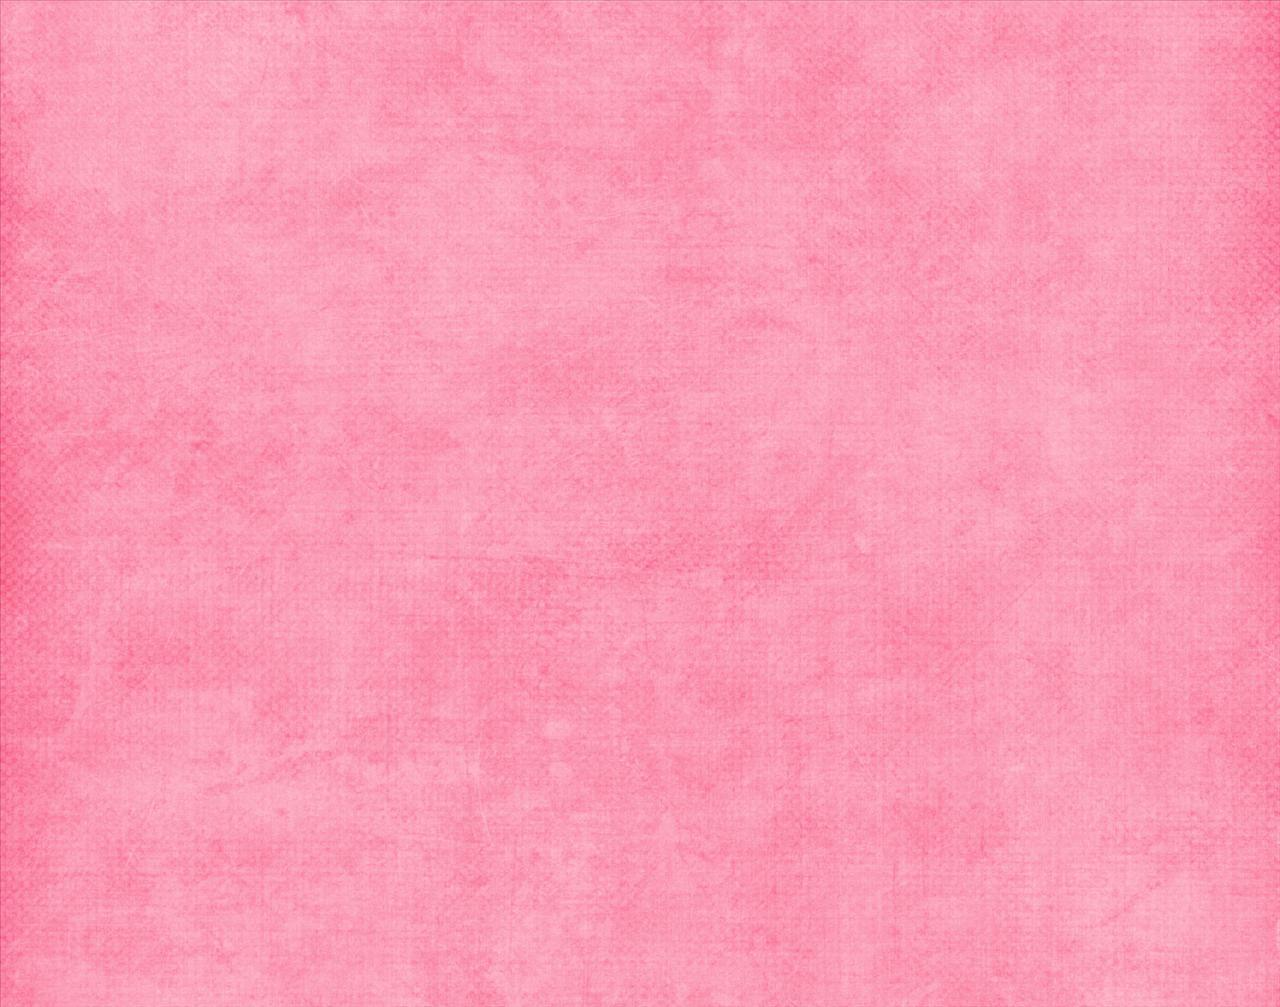 pink backgrounds wallpaper cave